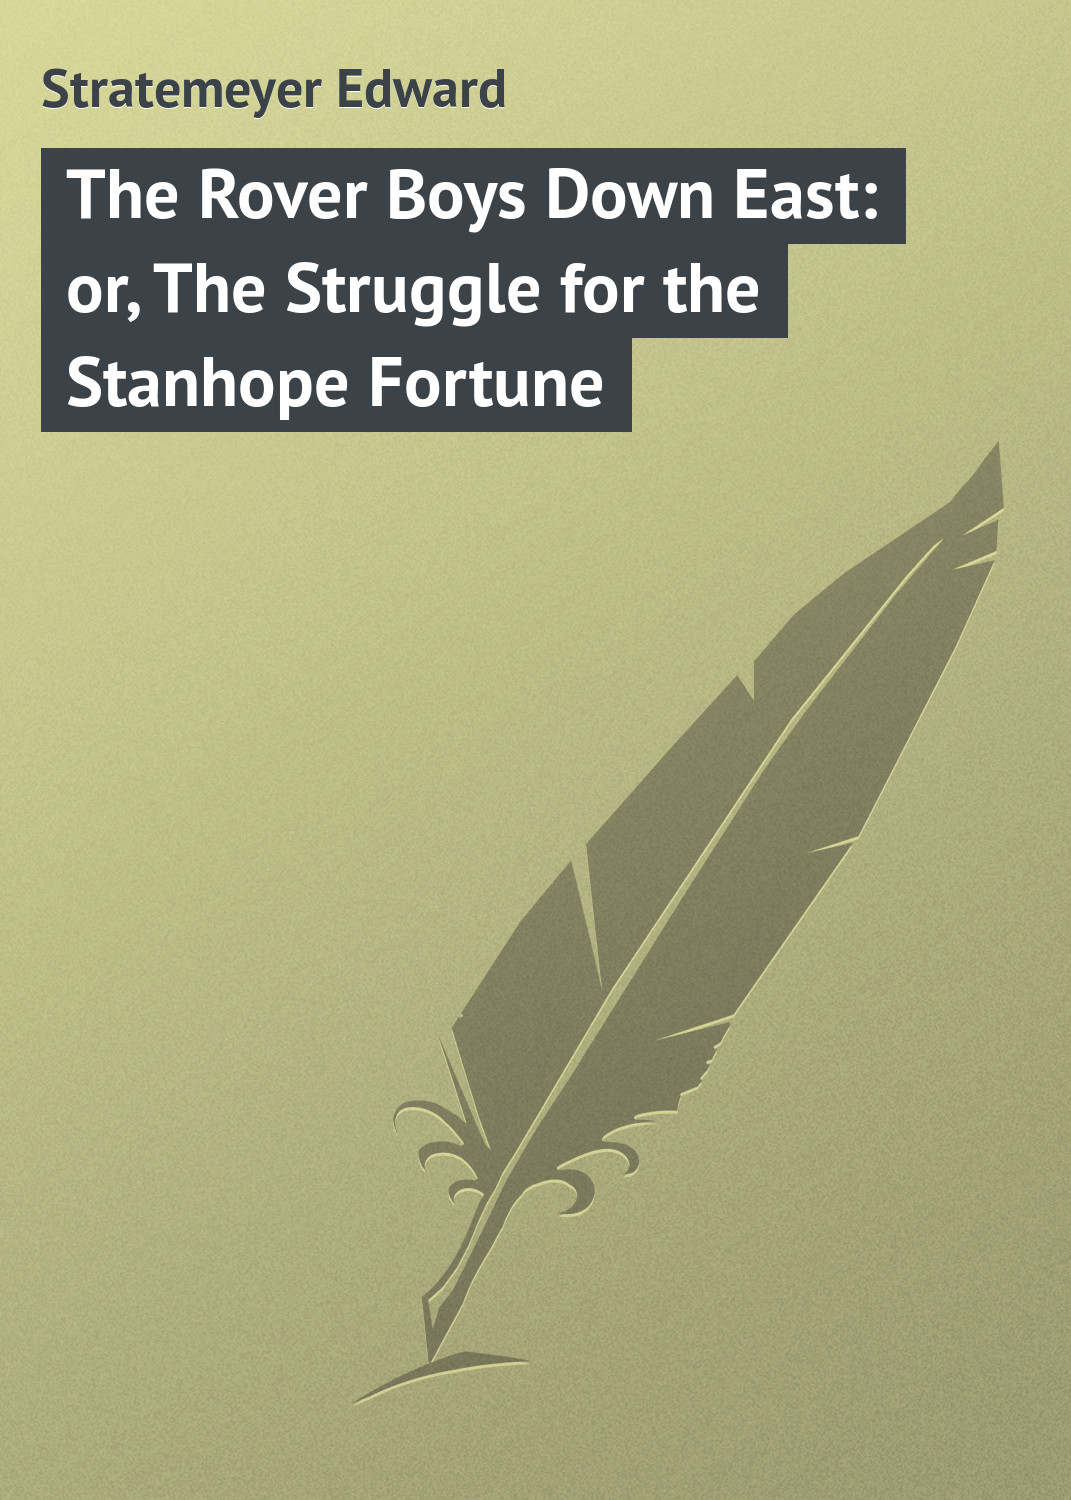 Stratemeyer Edward The Rover Boys Down East: or, The Struggle for the Stanhope Fortune